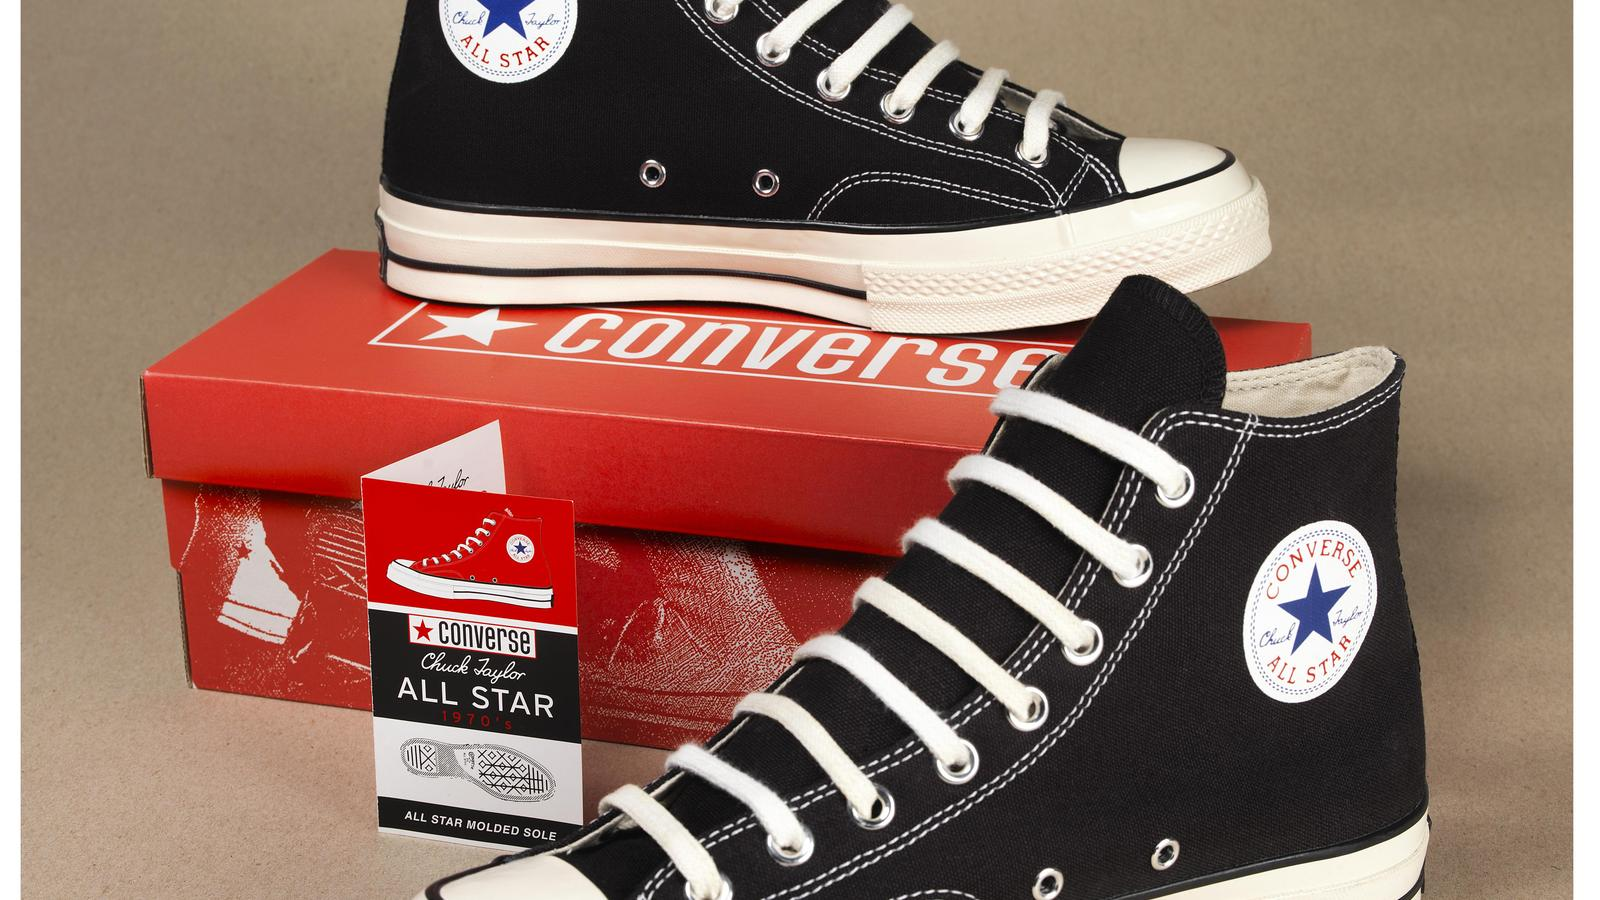 bb3f19595d5 Converse launches the 1970s Chuck Taylor All Star - Nike News